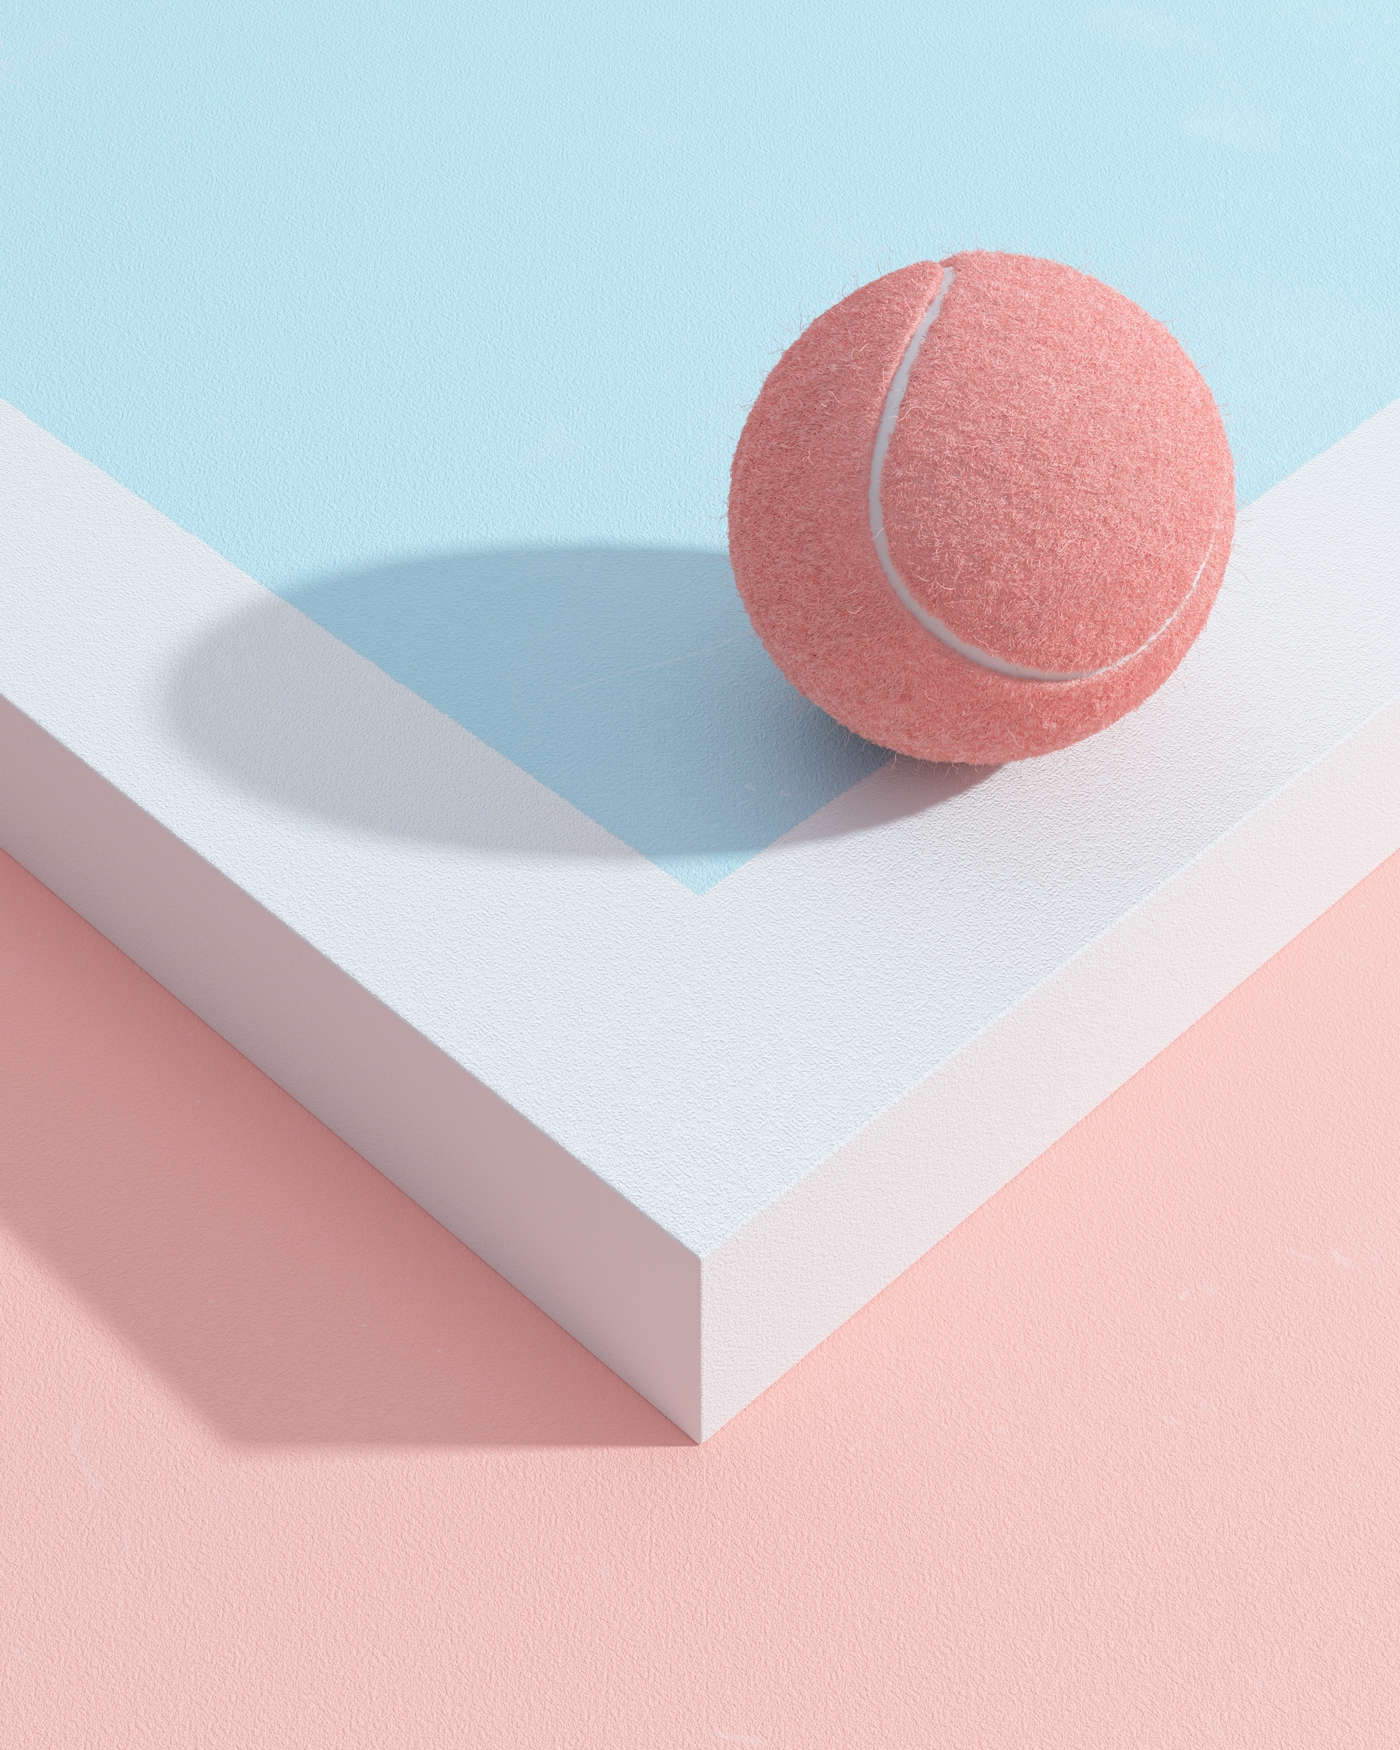 TENNIS Table-Tennis - surreal, minimalism - molistudio | ello